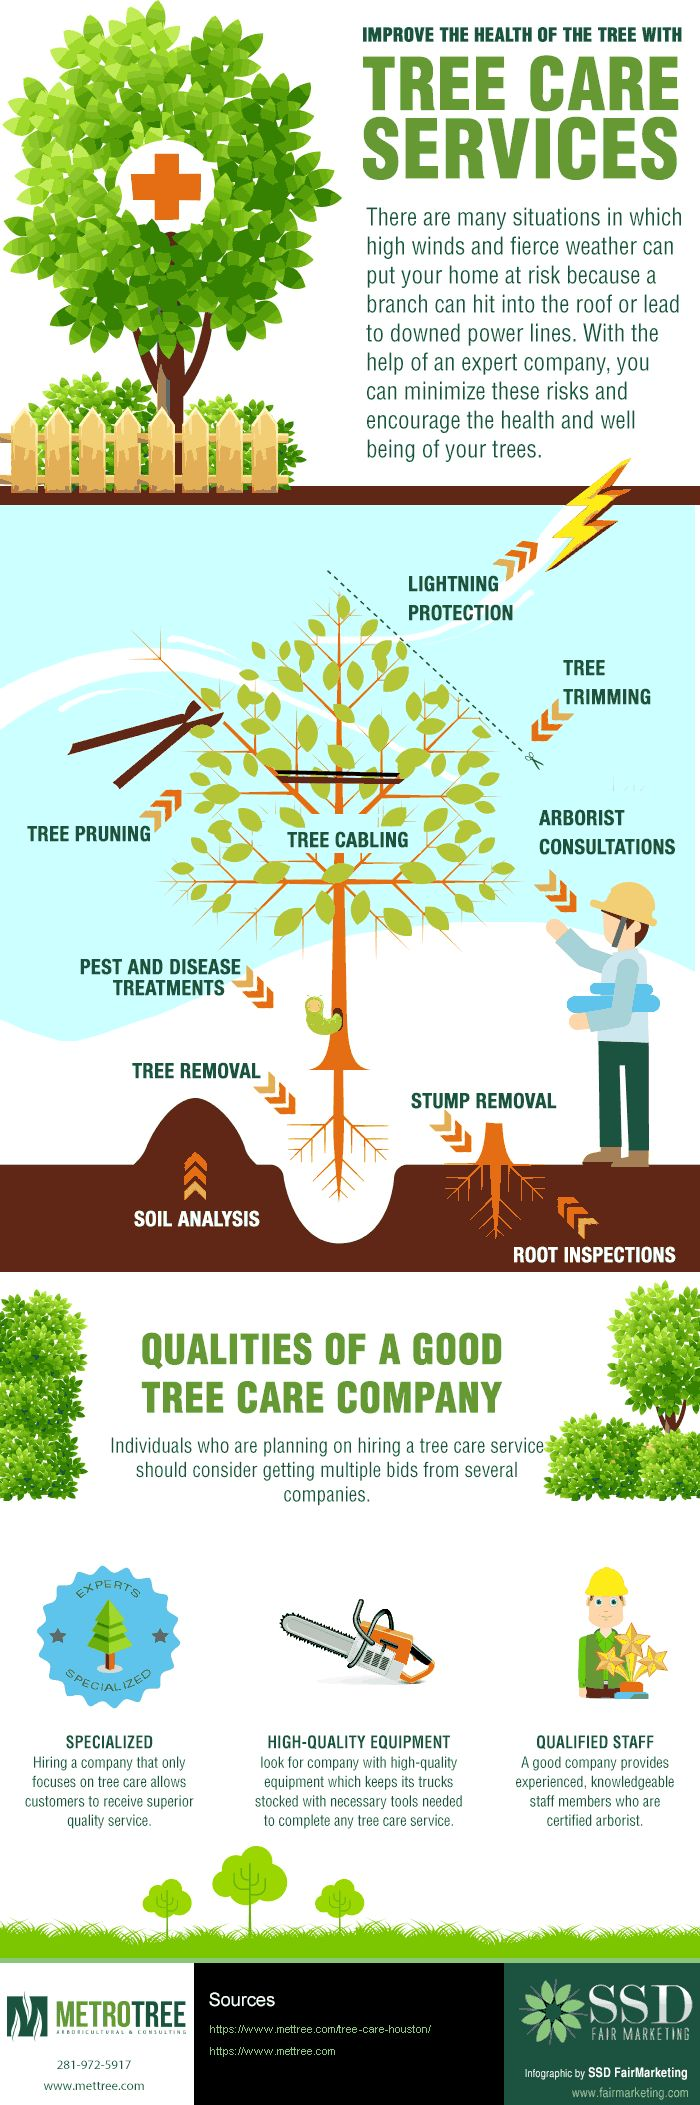 Gifographic for Tree Care